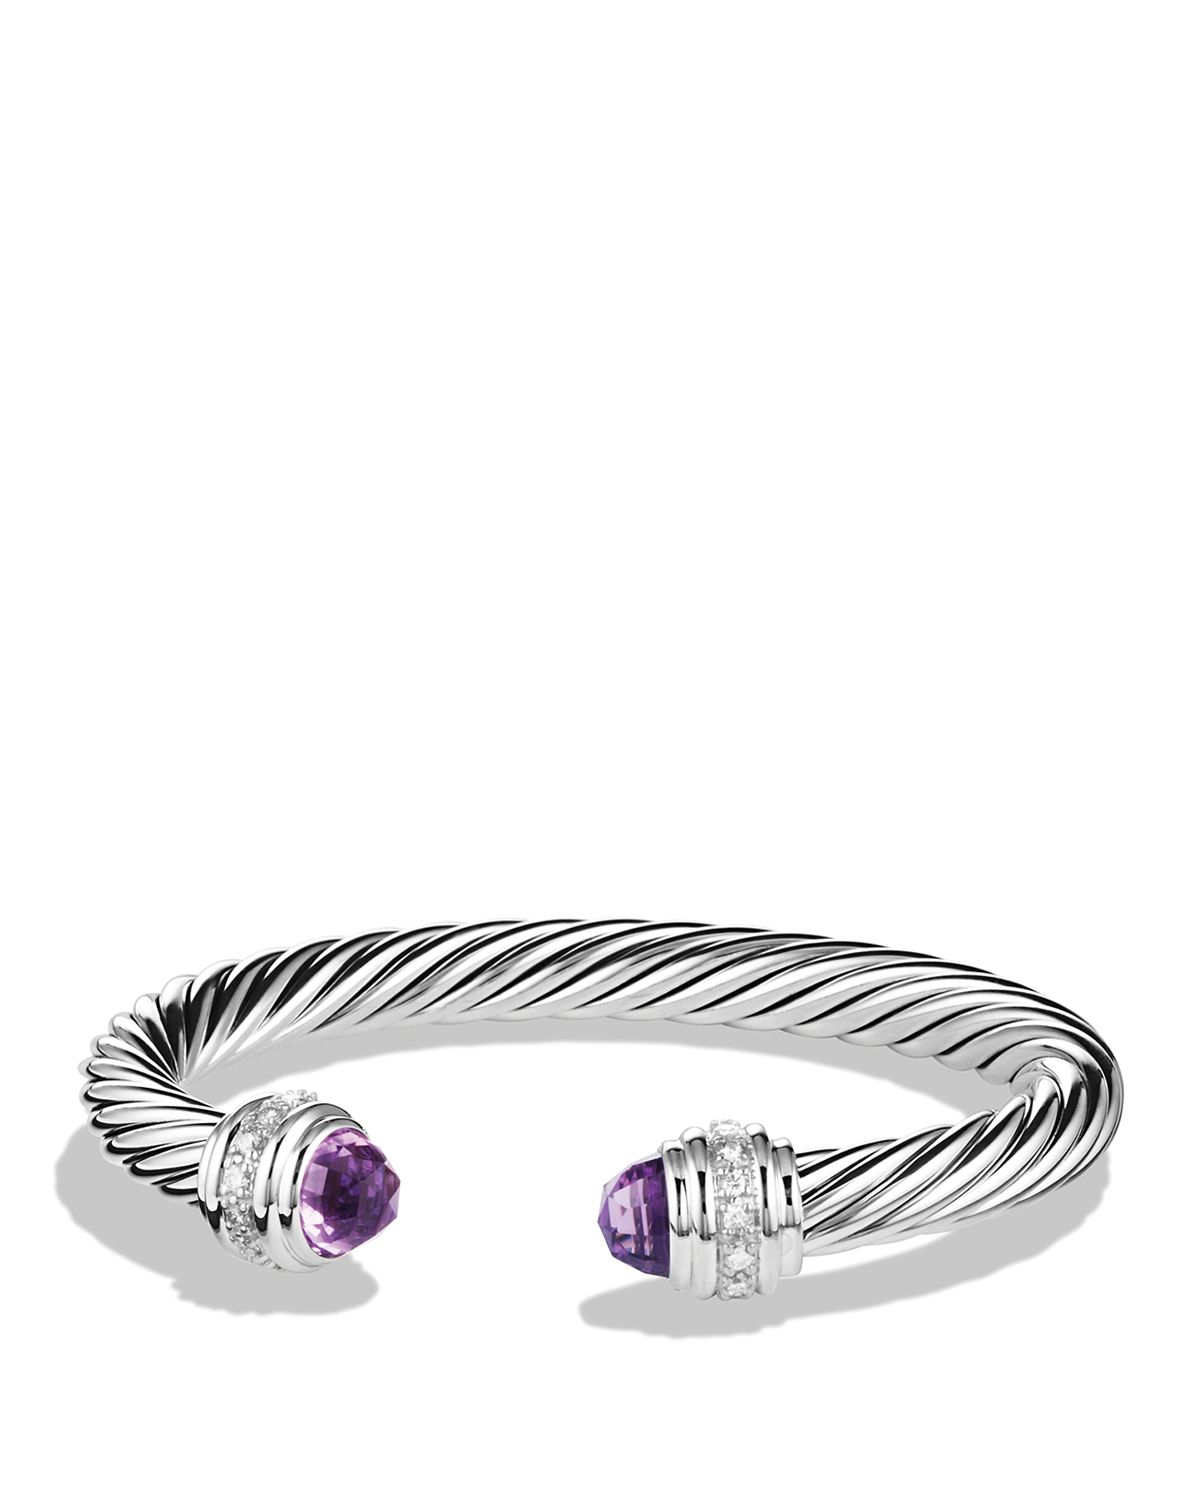 Gallery Previously Sold At Bloomingdale S Women Neon Bracelets David Yurman